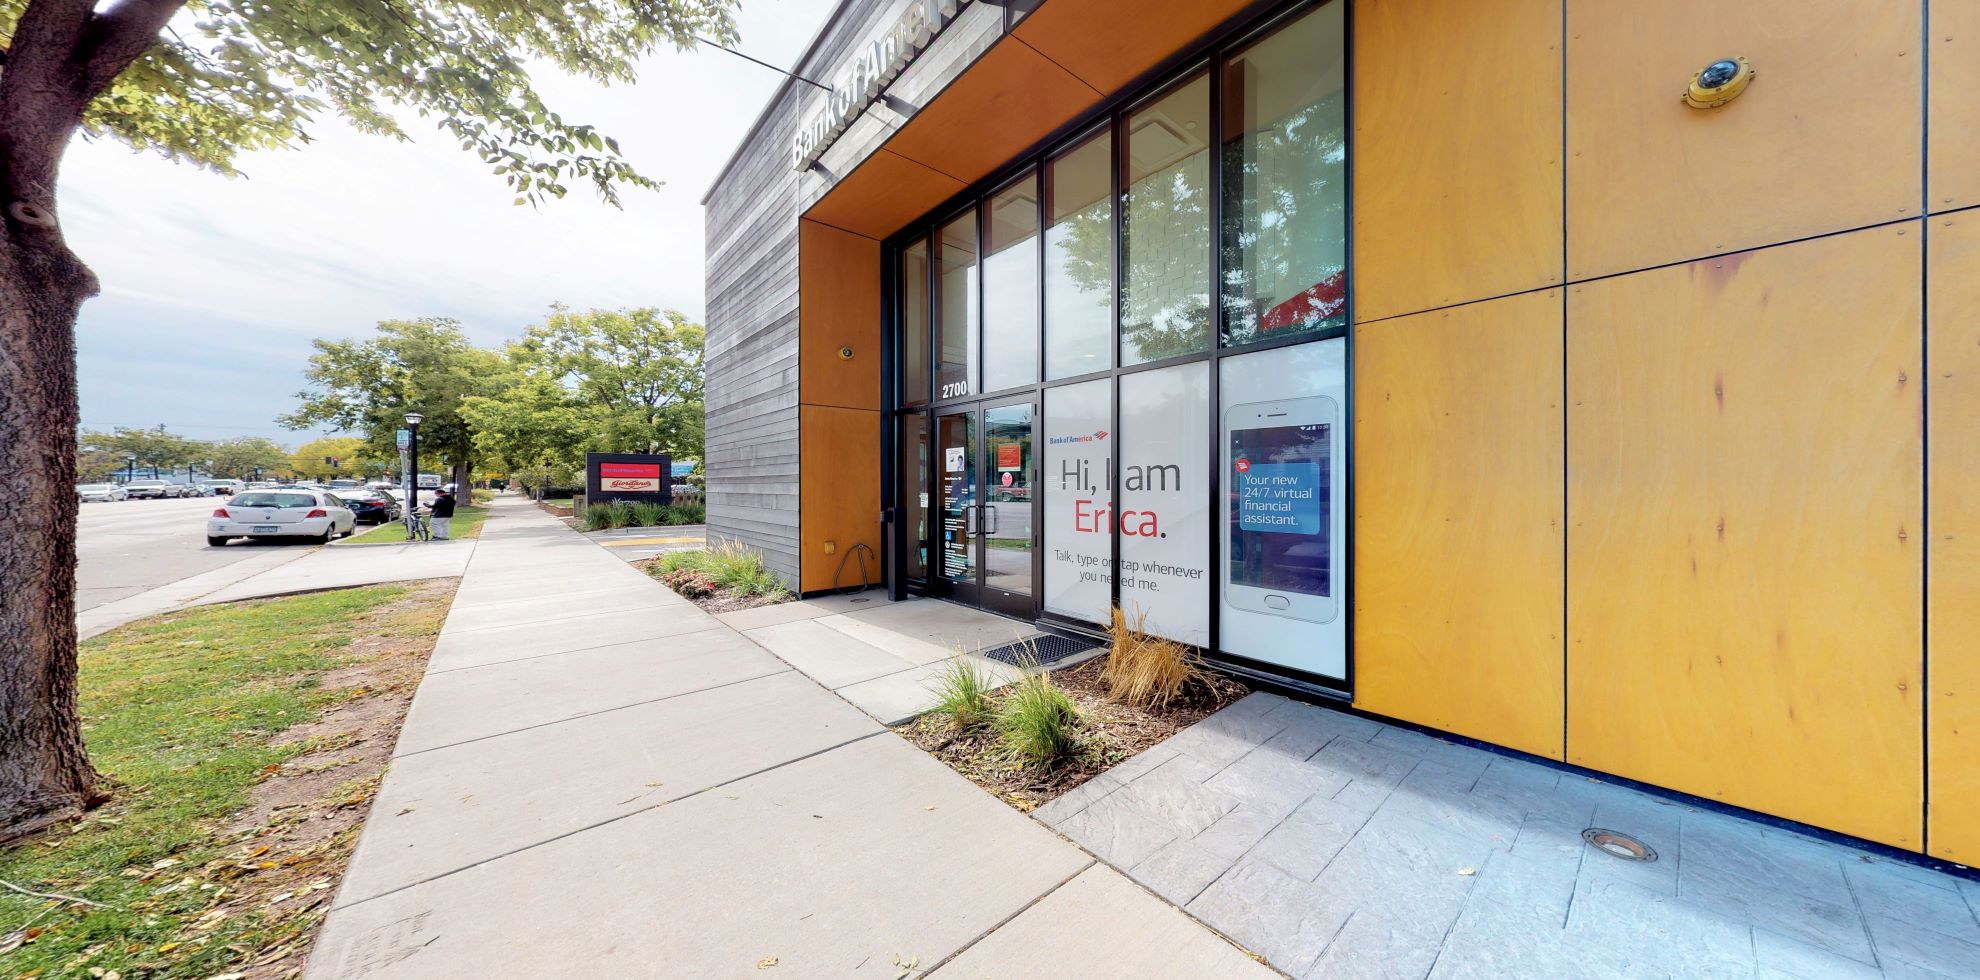 Bank of America financial center with drive-thru ATM   2700 Hennepin Ave STE 101, Minneapolis, MN 55408